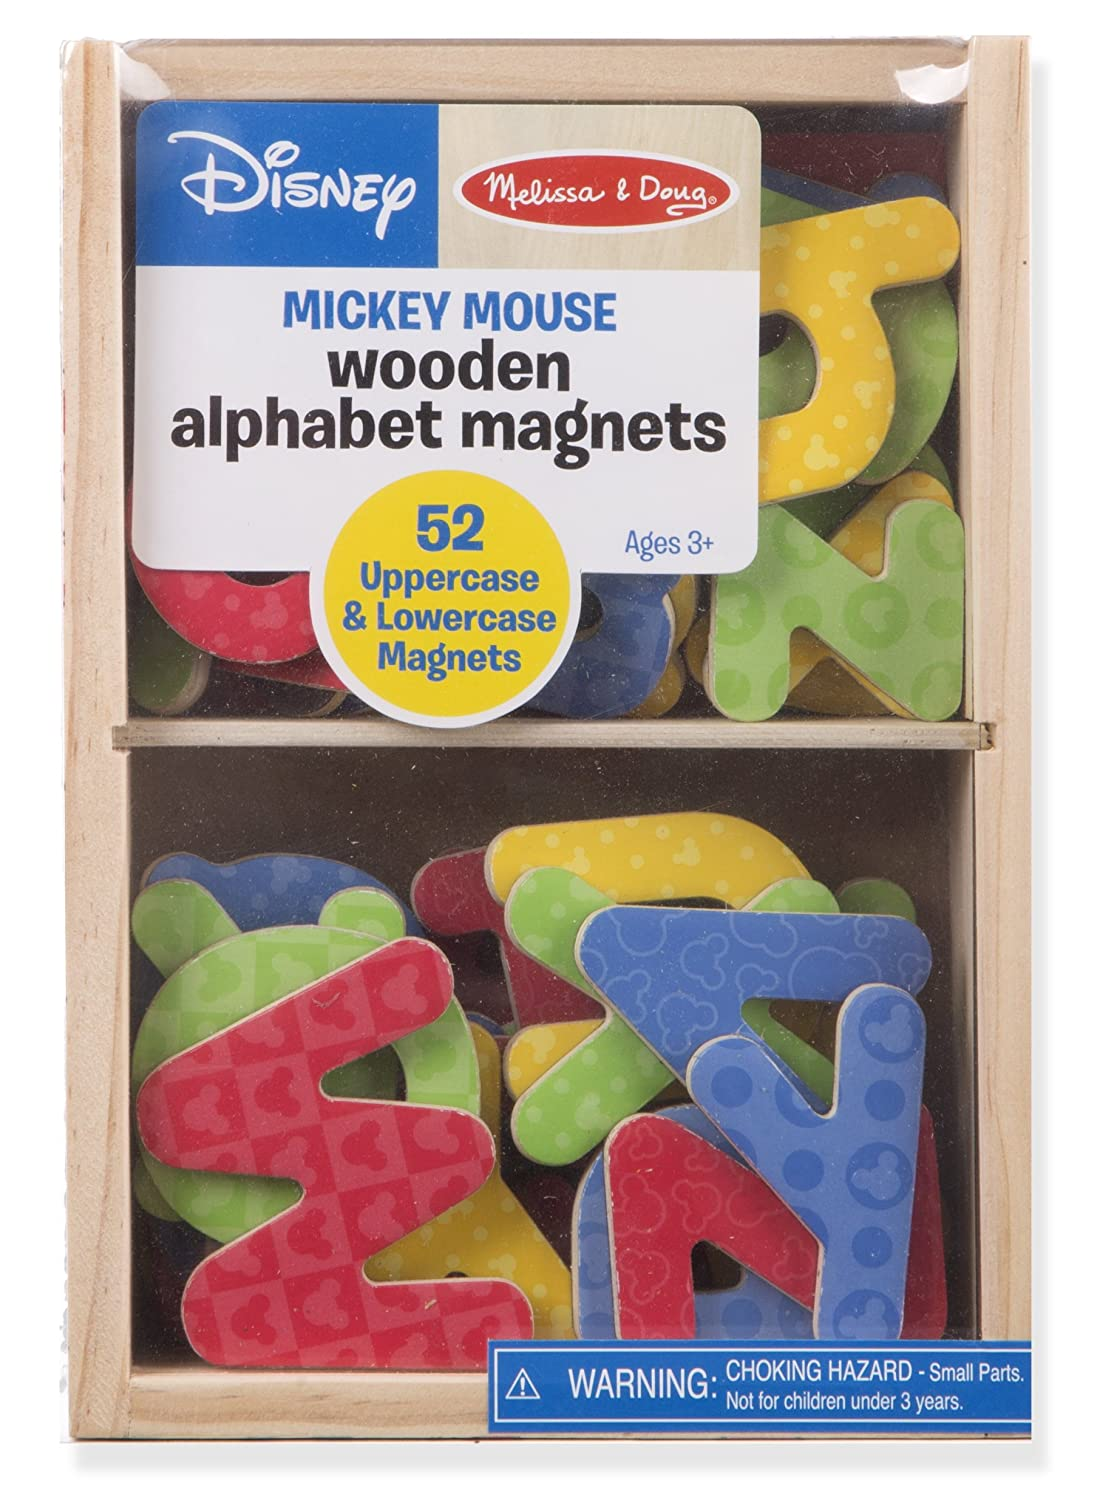 "Melissa & Doug Wooden Letter Alphabet Magnets, Developmental Toys, Sturdy Wooden Construction, 52 Pieces, 7.8"" H x 5.45"" W x 1.85"" L"